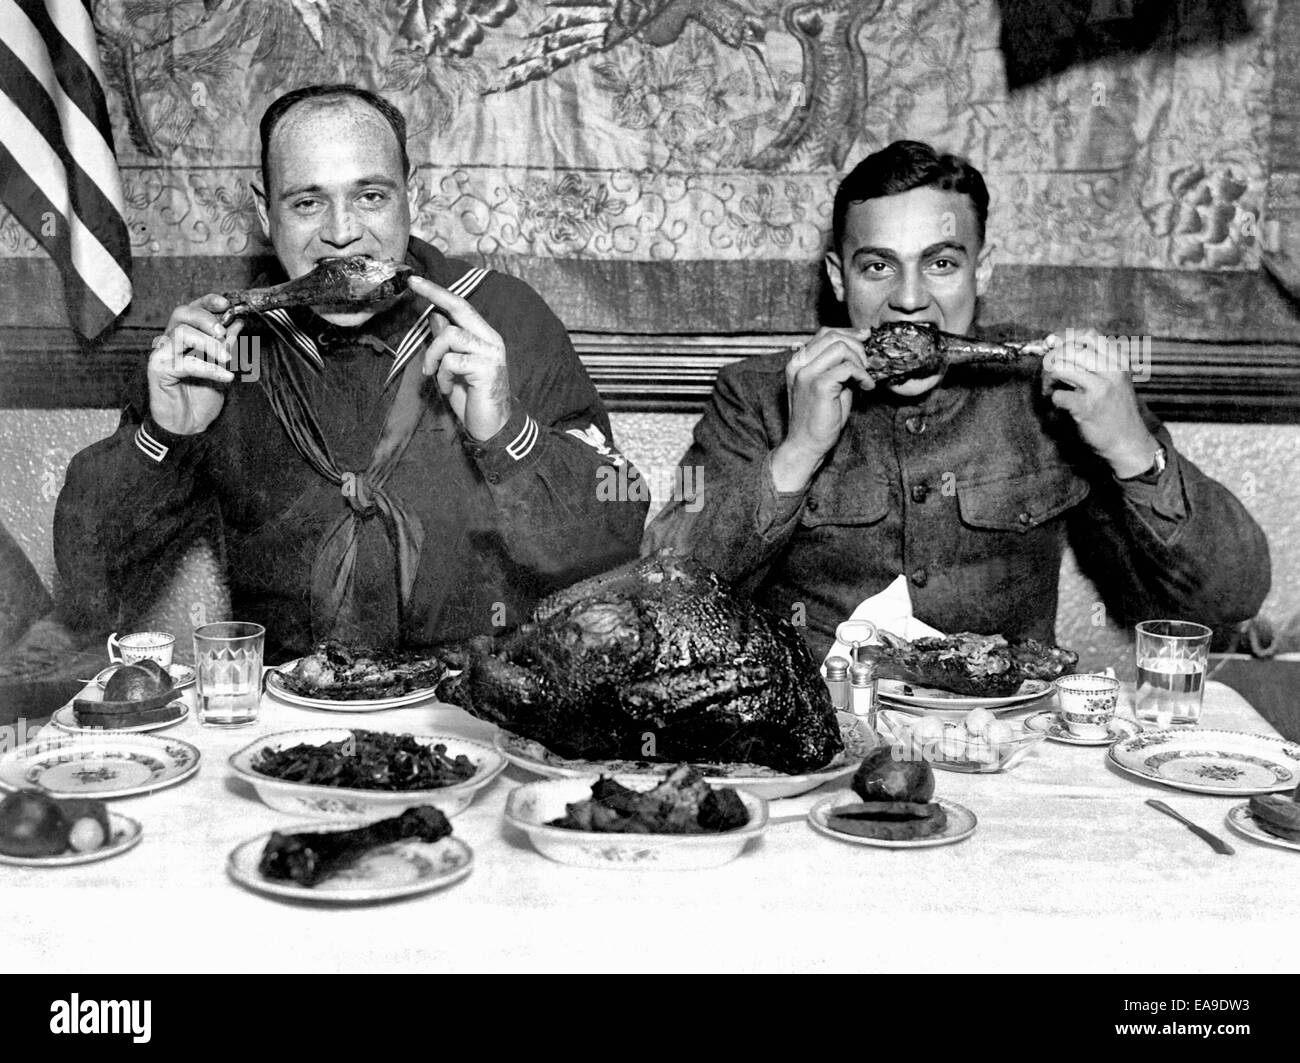 Thanksgiving cheer distributed for men in service. Servicemen eating a Thanksgiving dinner after the end of World - Stock Image